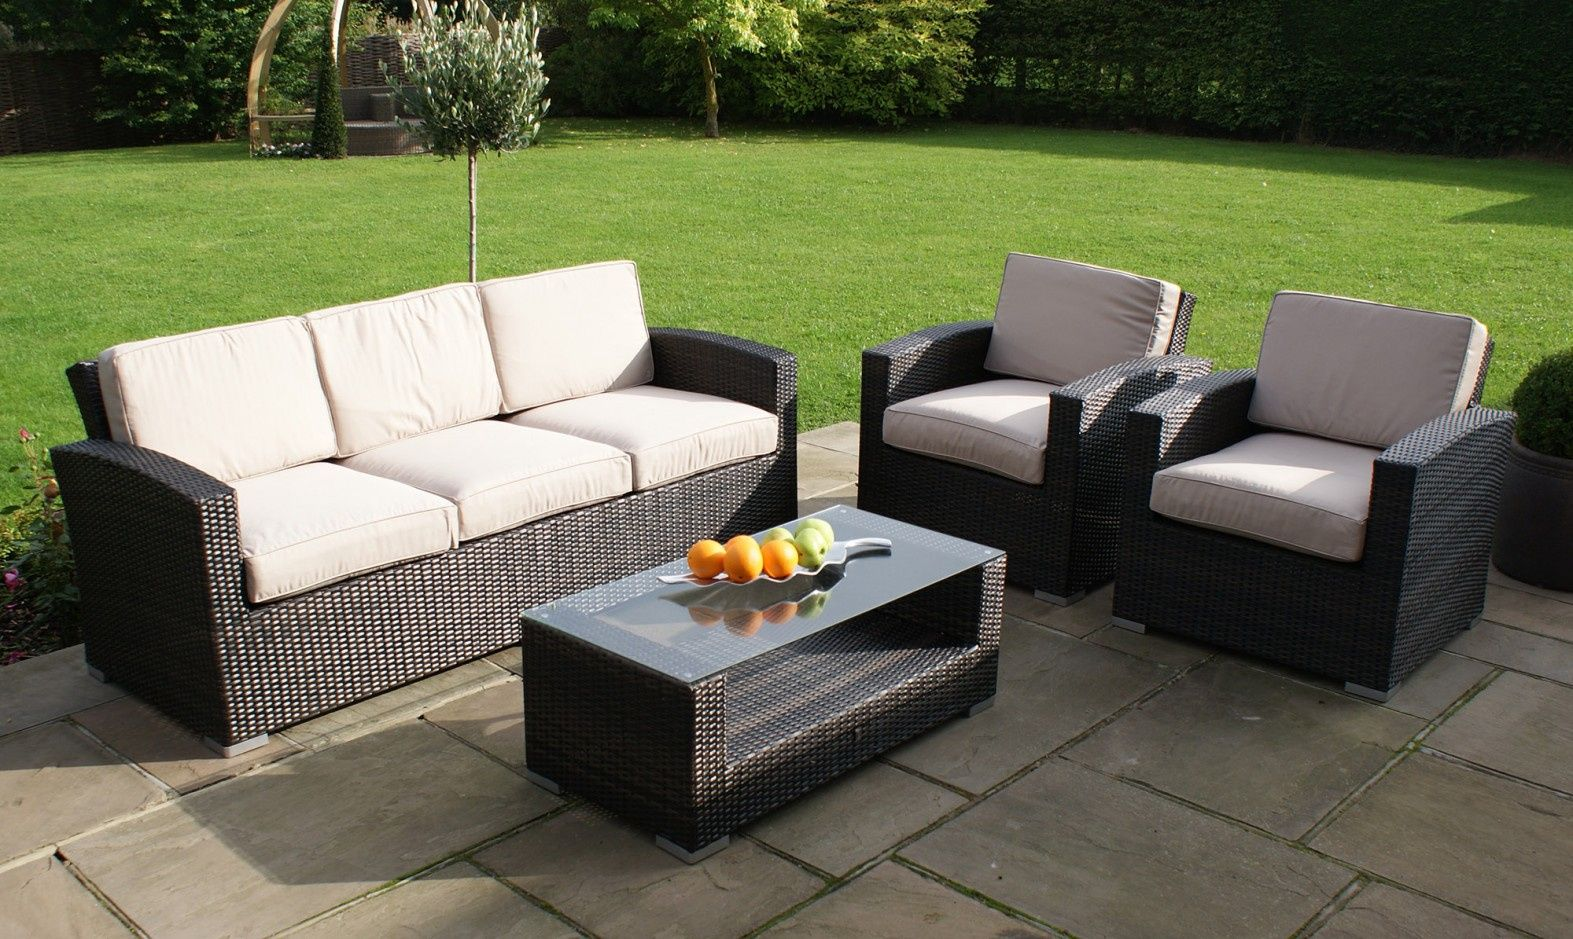 Rattan Outdoor Furniture Sale - Americas Best Furniture Check more